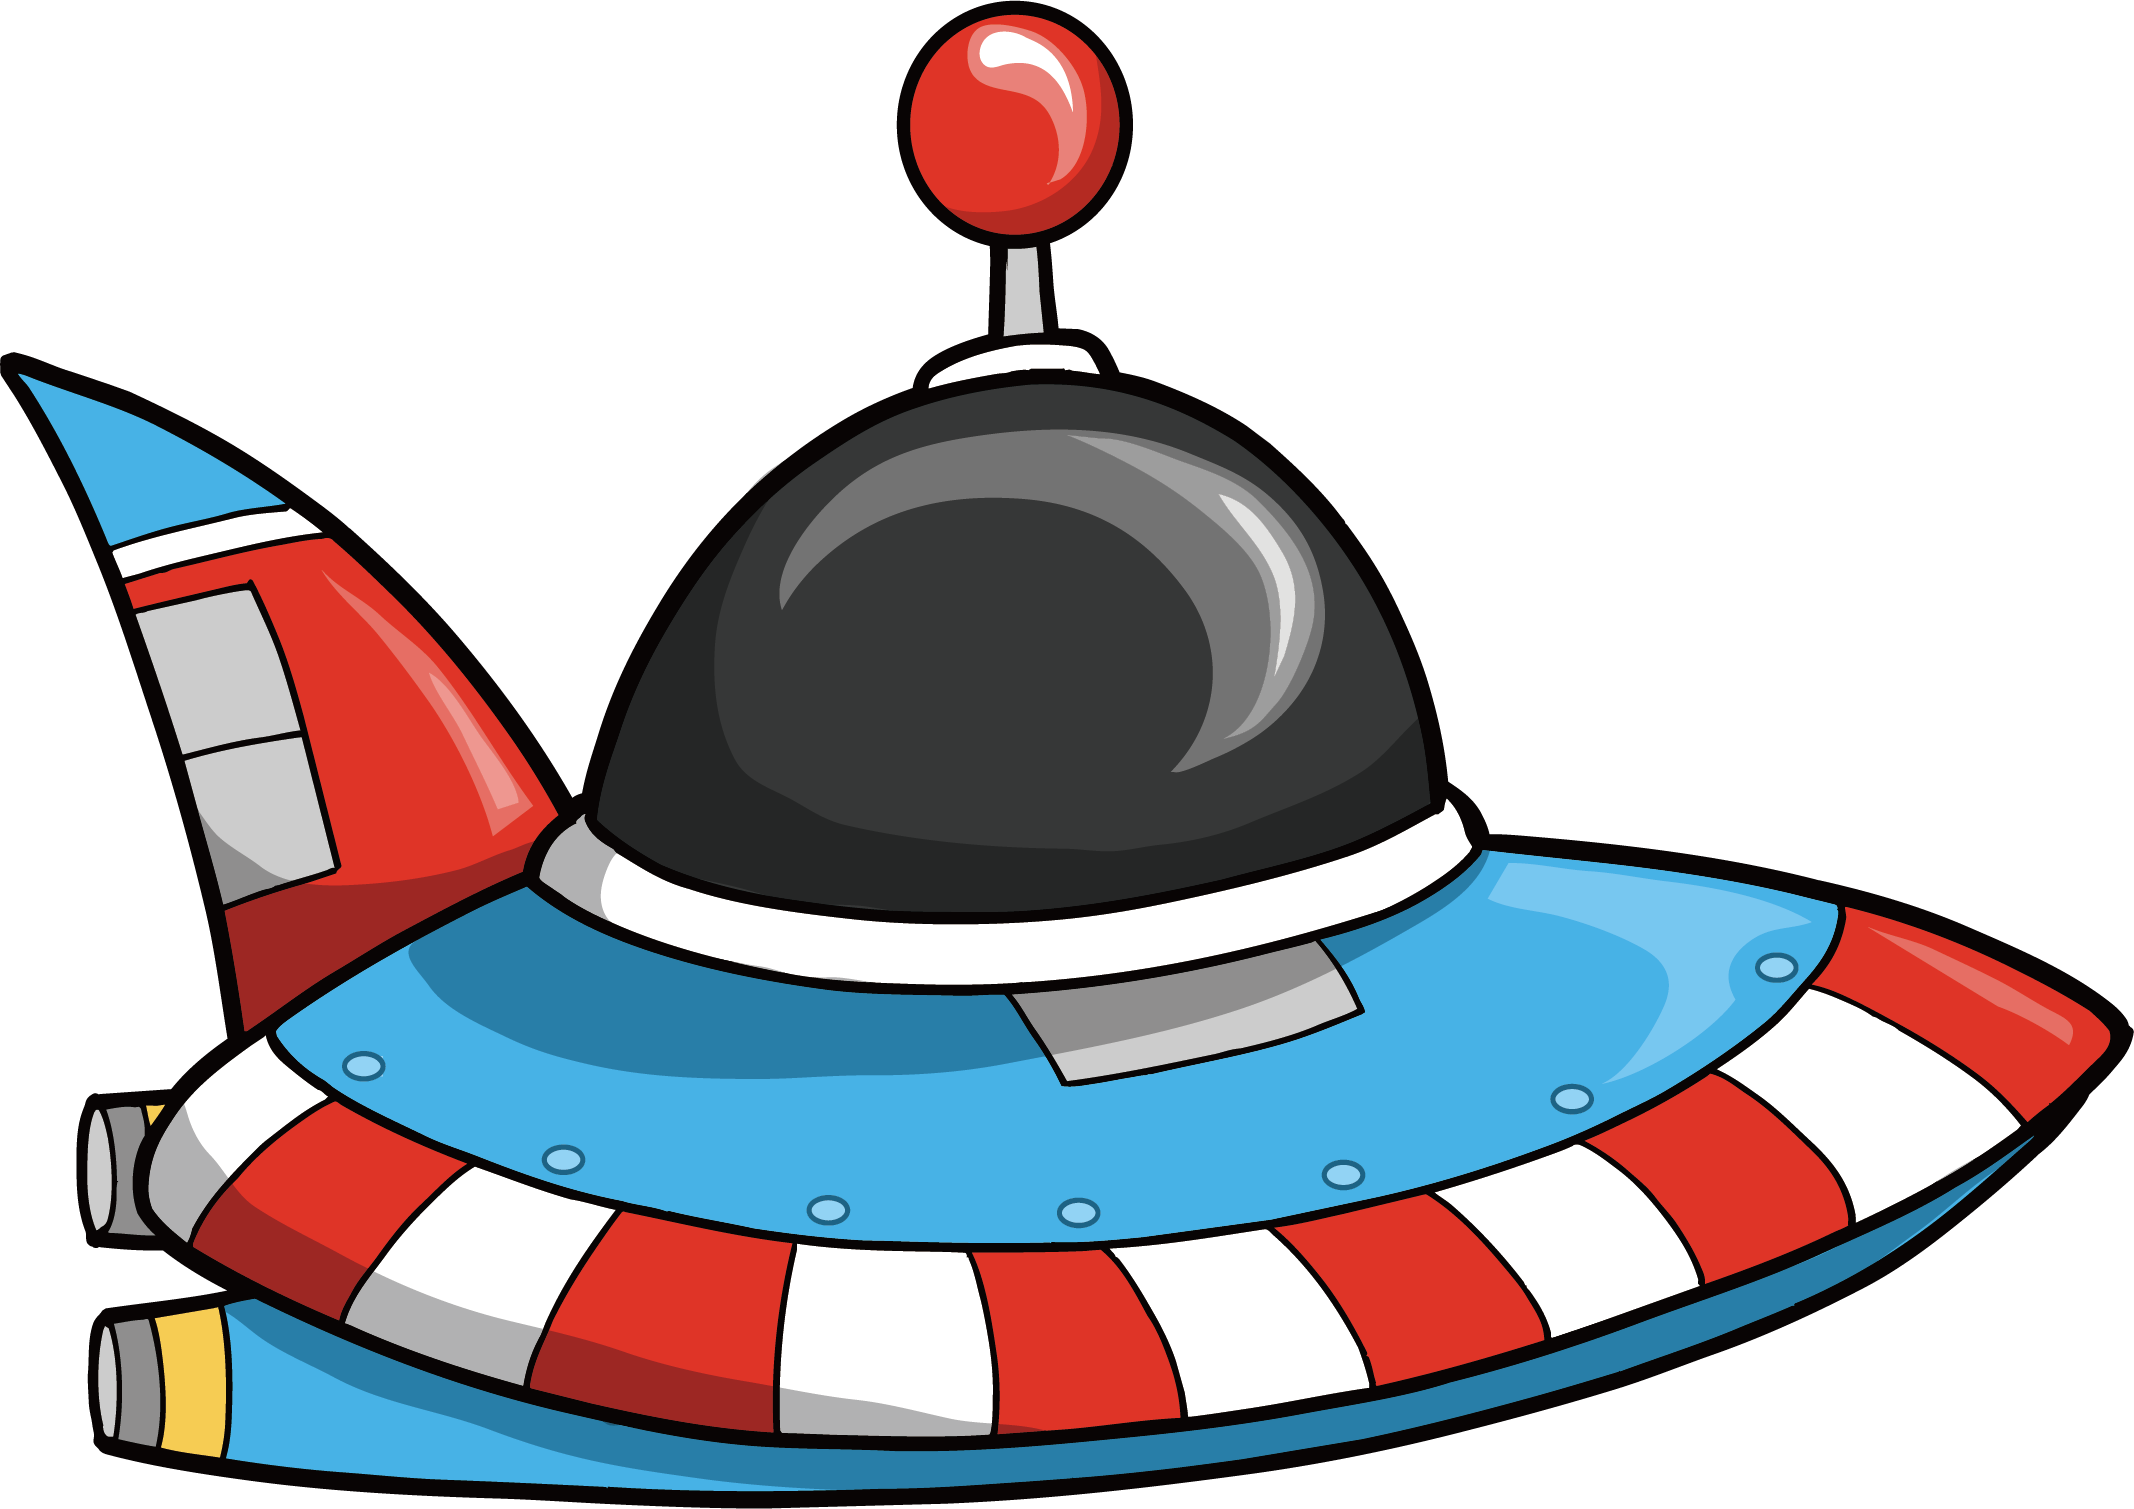 Spaceship clipart small spaceship. Outer space flying saucer